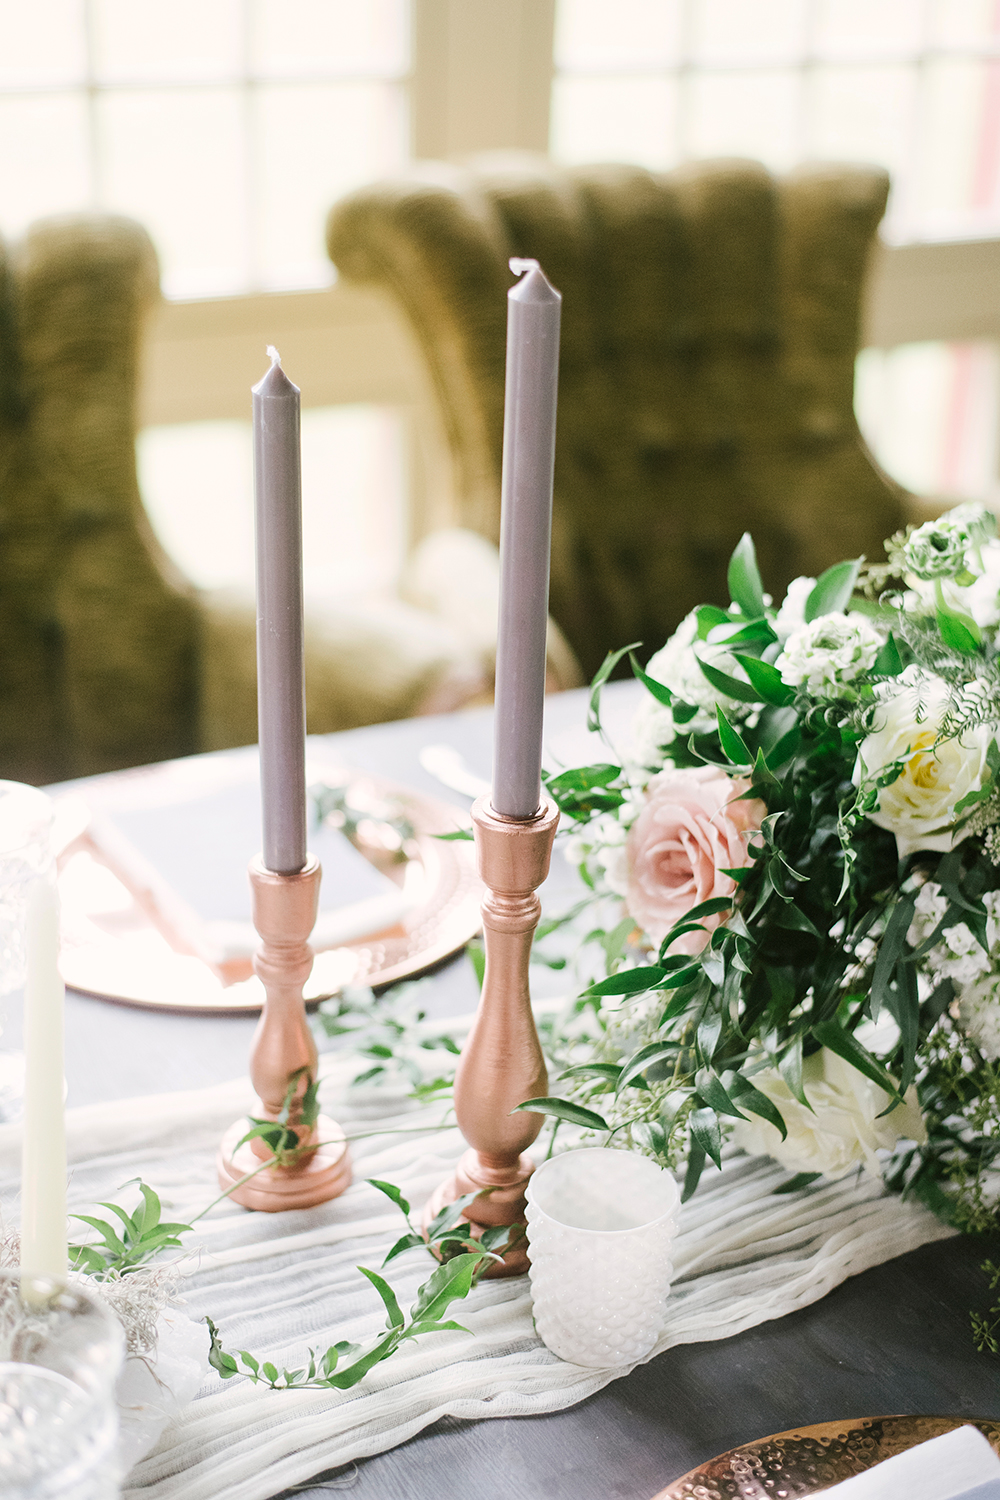 wedding candles - photo by Alicia King Photography http://ruffledblog.com/upstate-new-york-wedding-ideas-with-copper